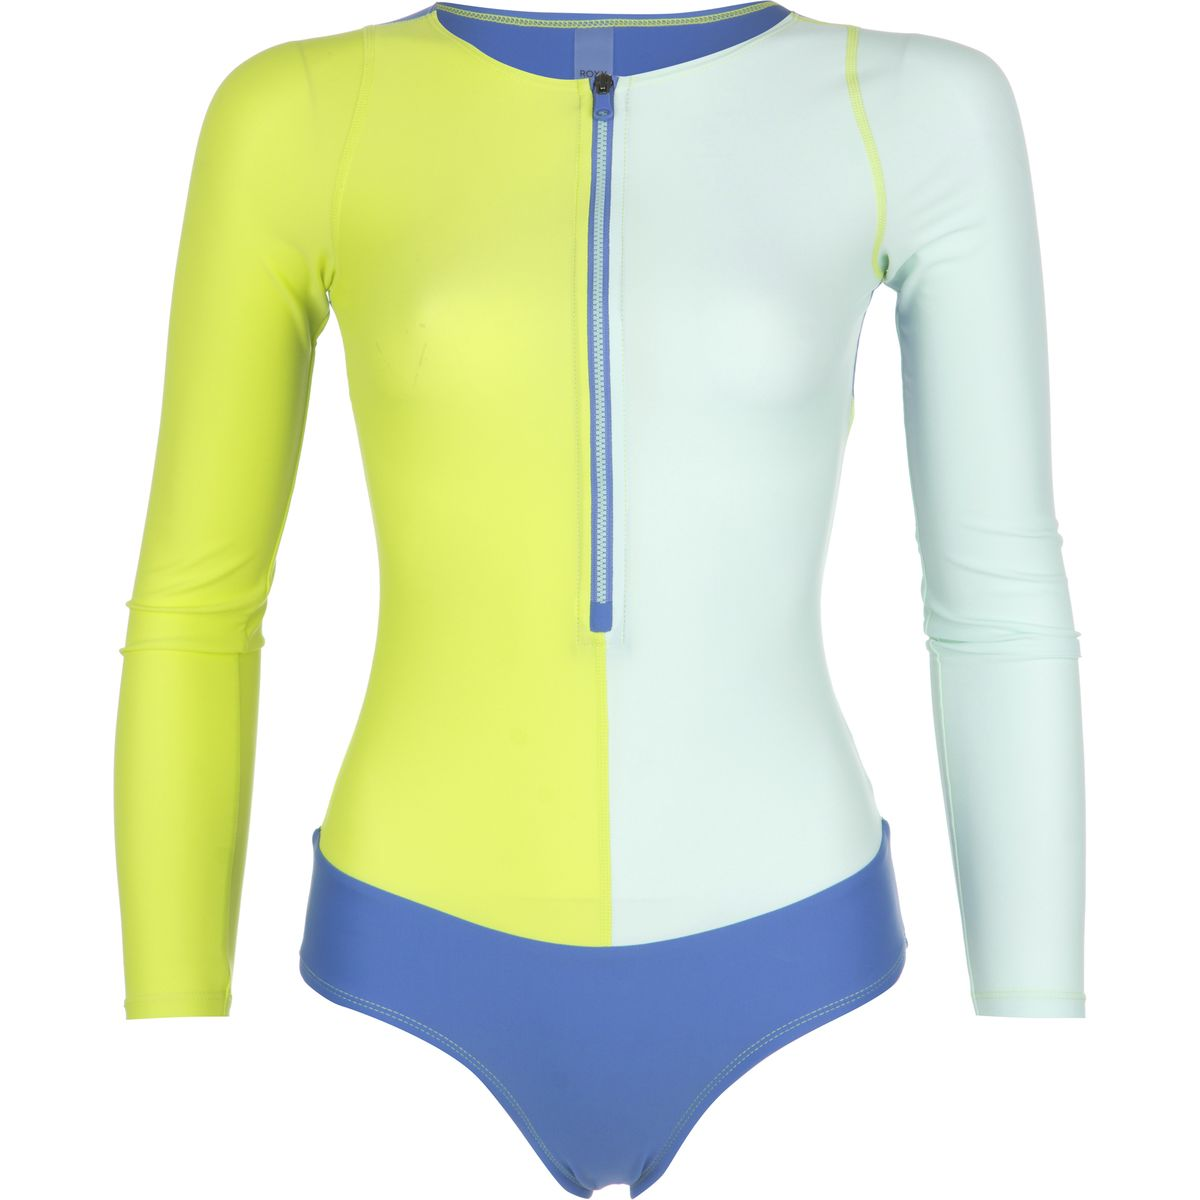 Roxy High Line Rashguard Suit